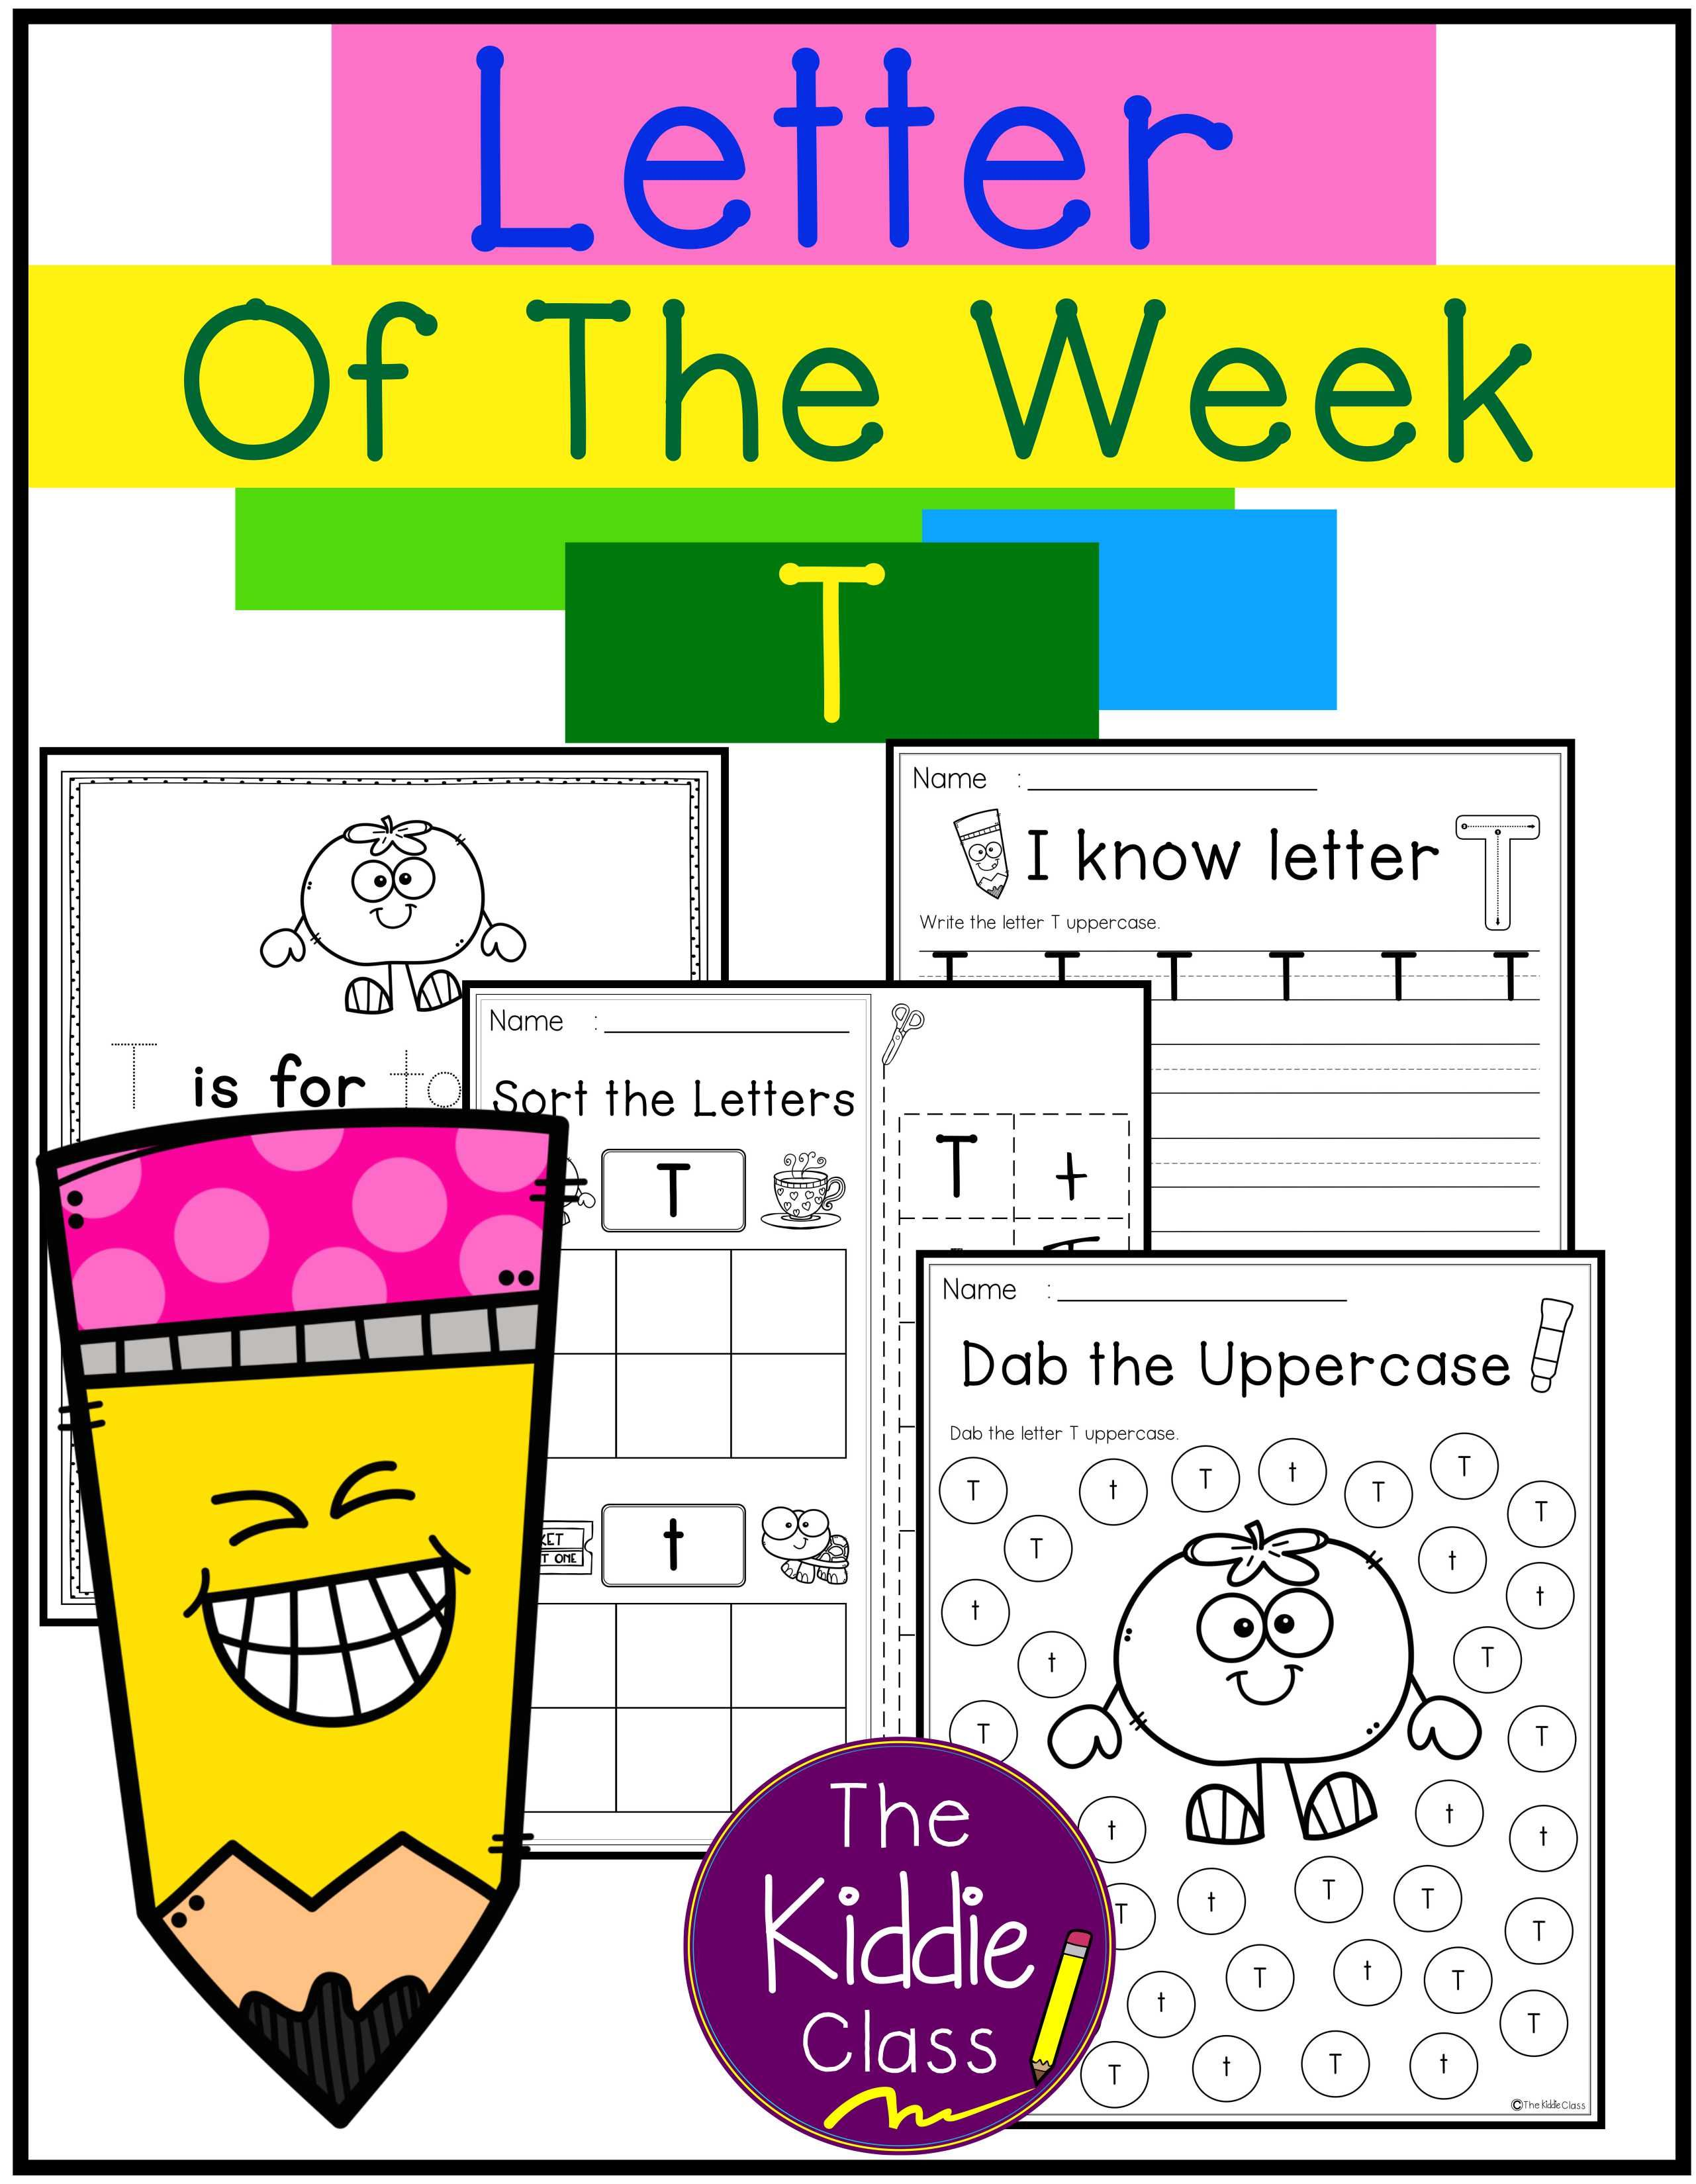 Letter Of The Week T